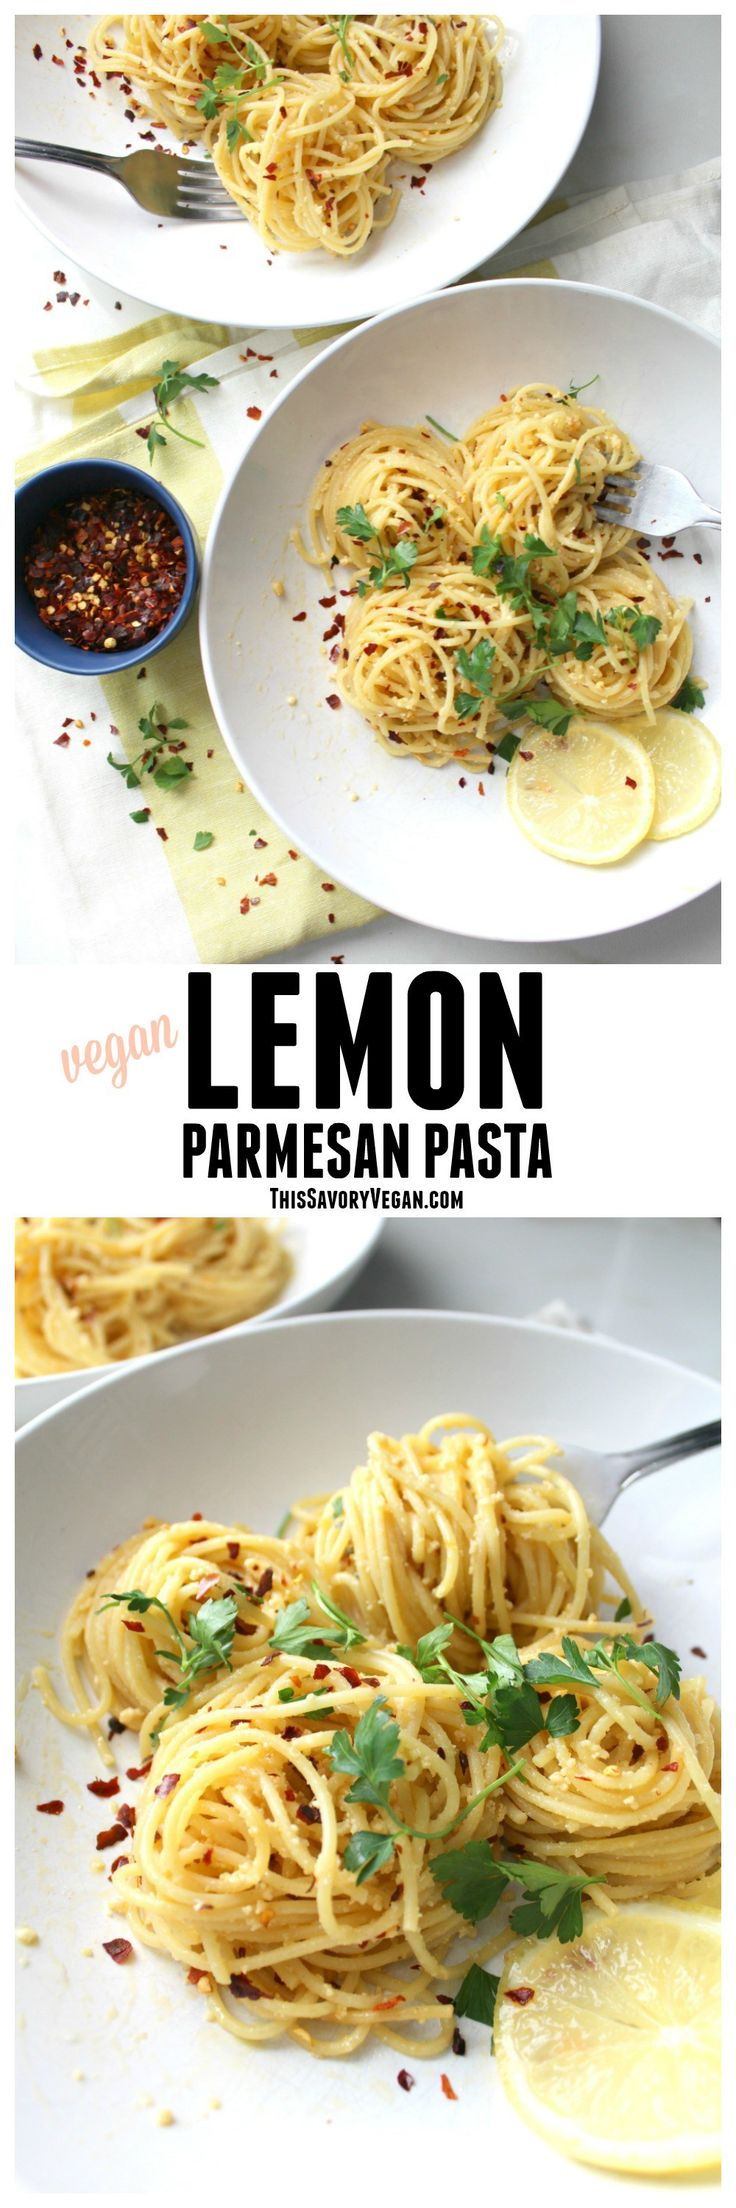 This Vegan Lemon Parmesan Pasta is a simple weeknight dinner that comes together in less than 30 minutes | ThisSavoryVegan.com